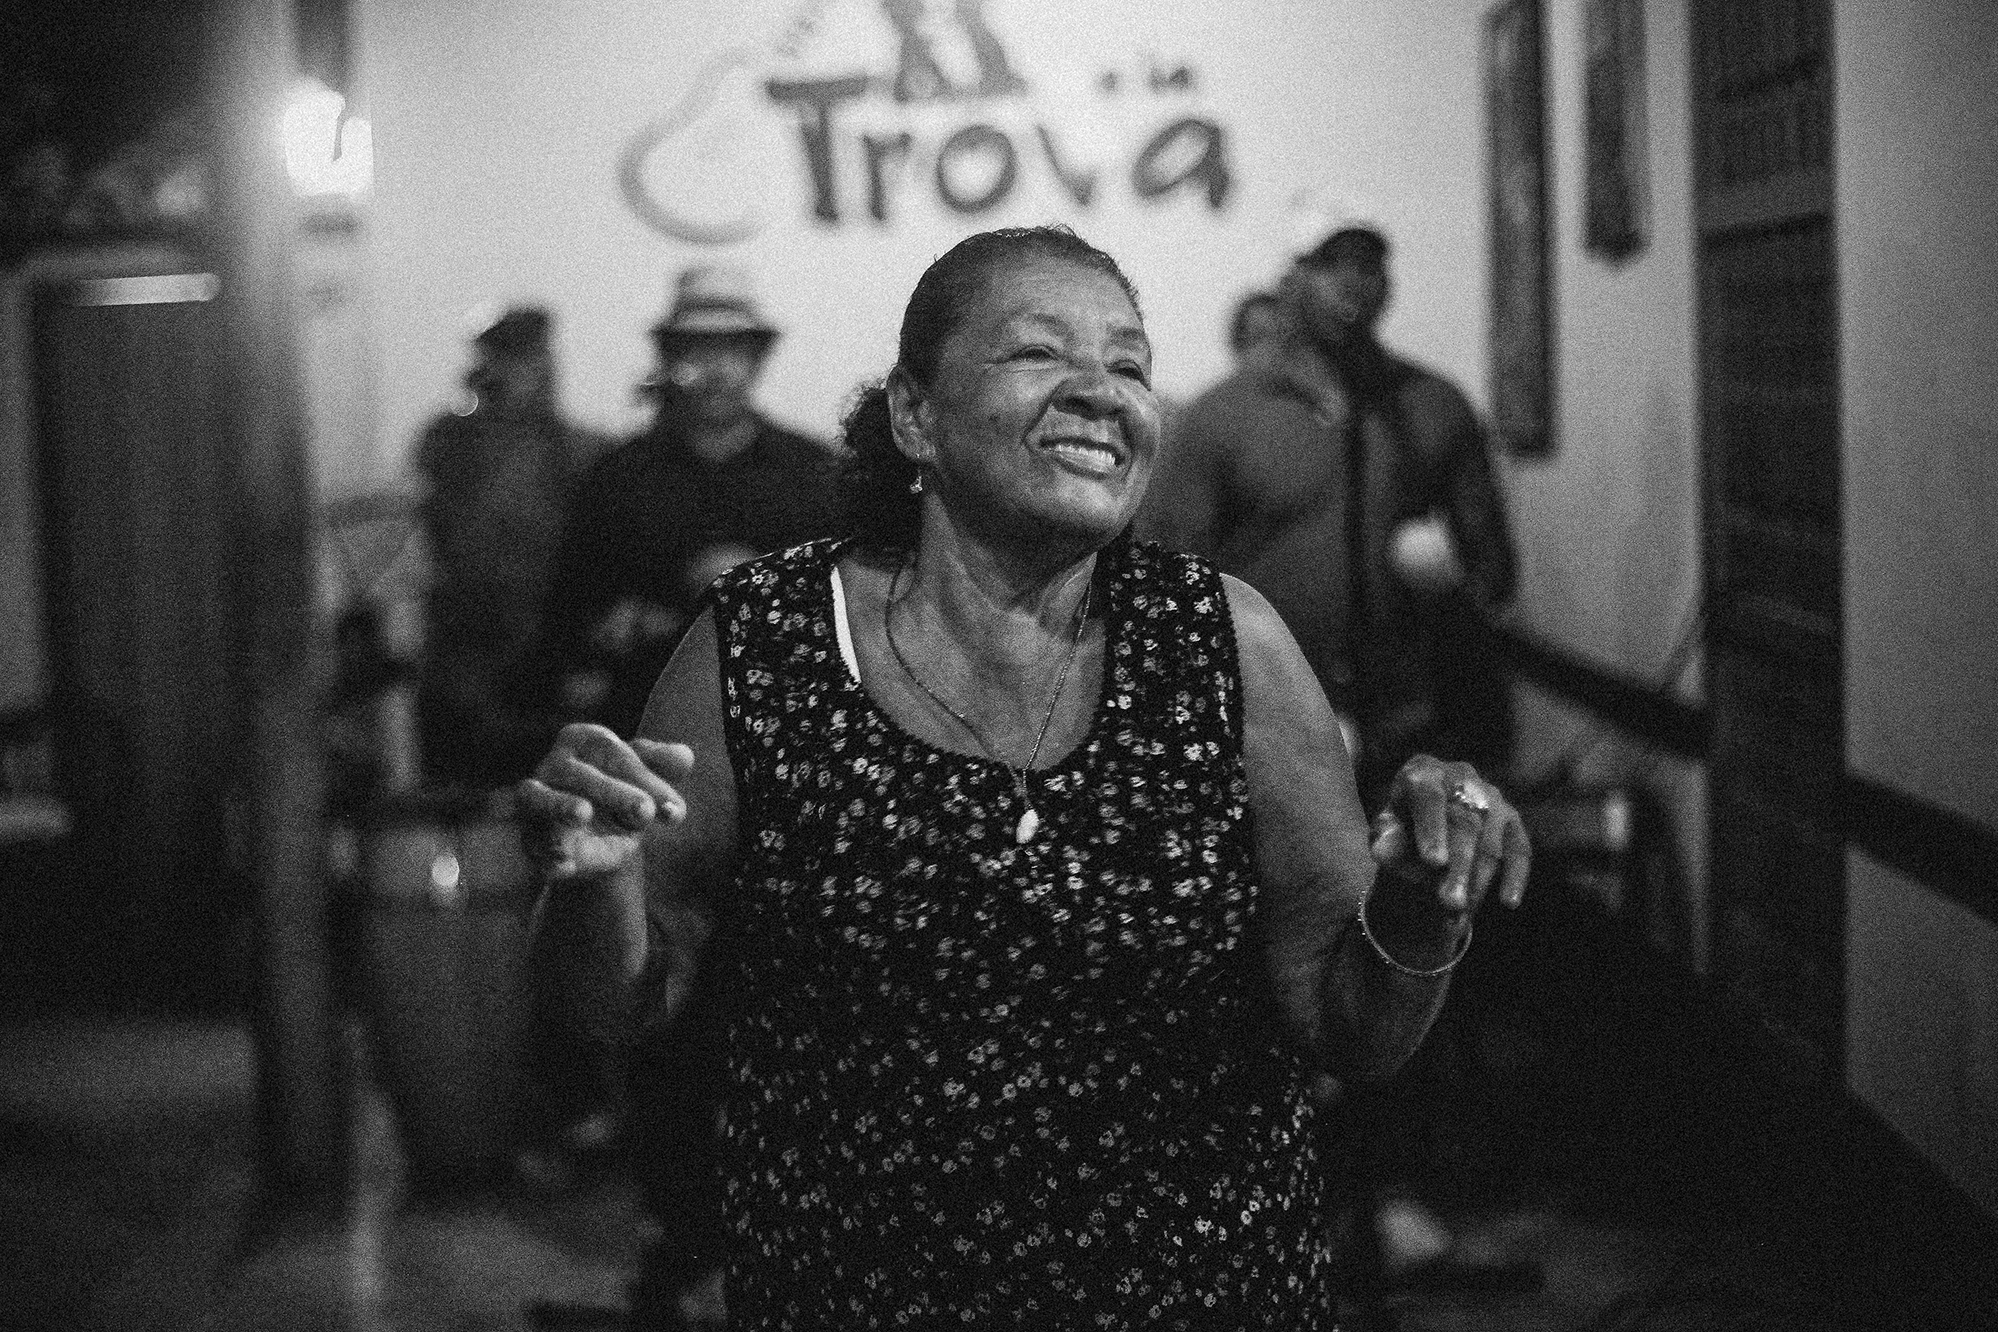 A lady dances as a band plays Salsa music in the background, Salsa is very popular in Cuba and has been part of the country's identity ever since.  Trinidad, Cuba 2013